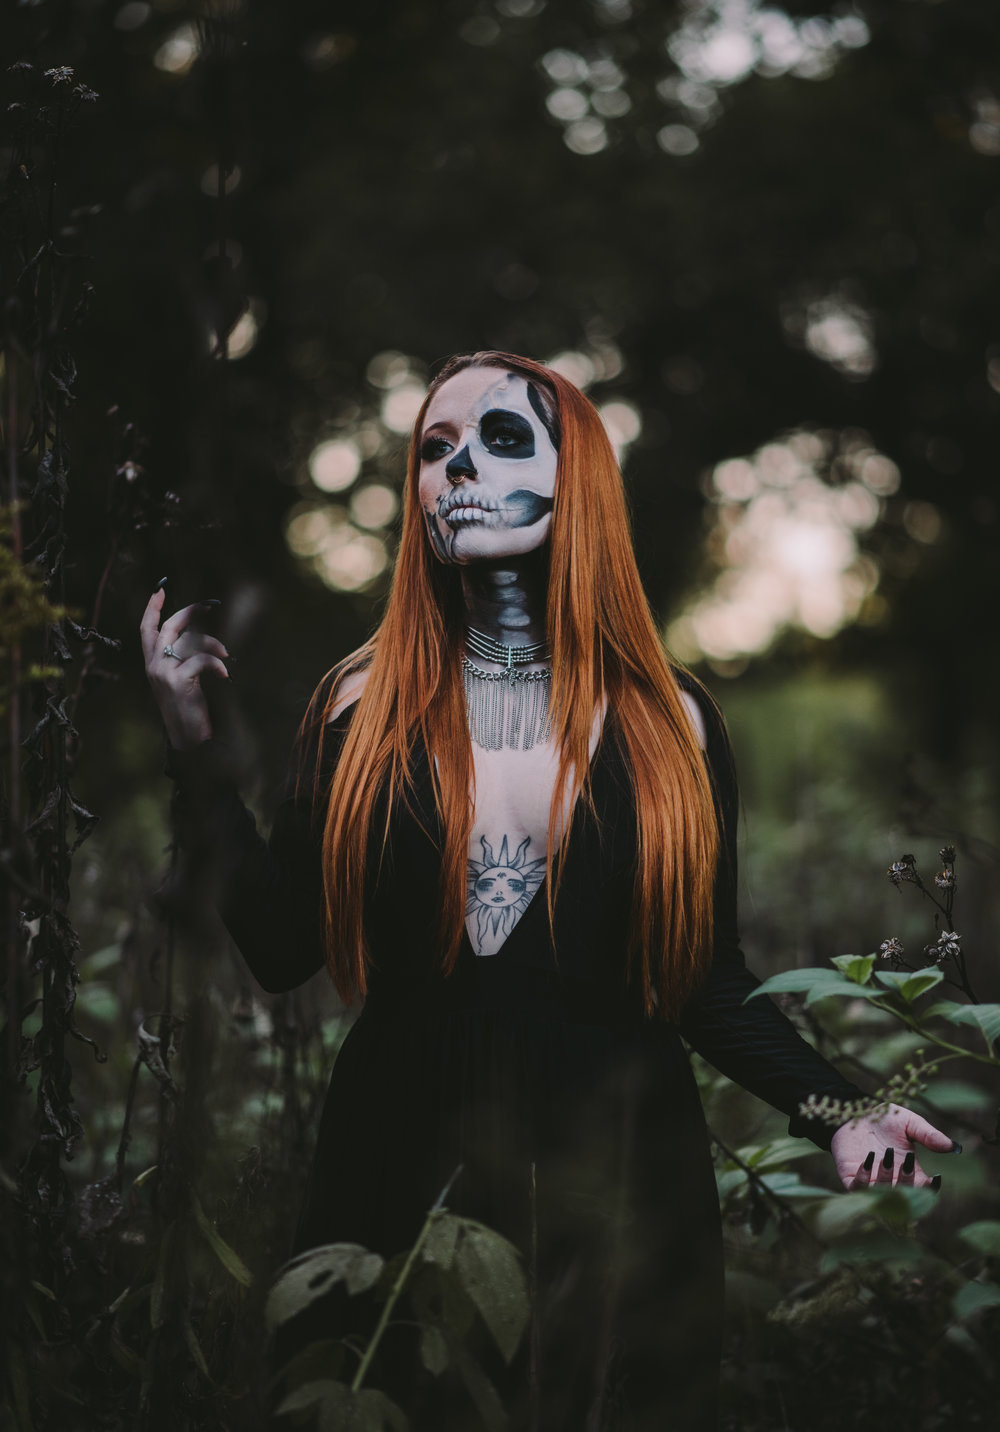 HalloweenSession_Fridaythe13th_October2017_IndianaPortraitPhotographer_SamanthaRosePhotography_--2.jpg